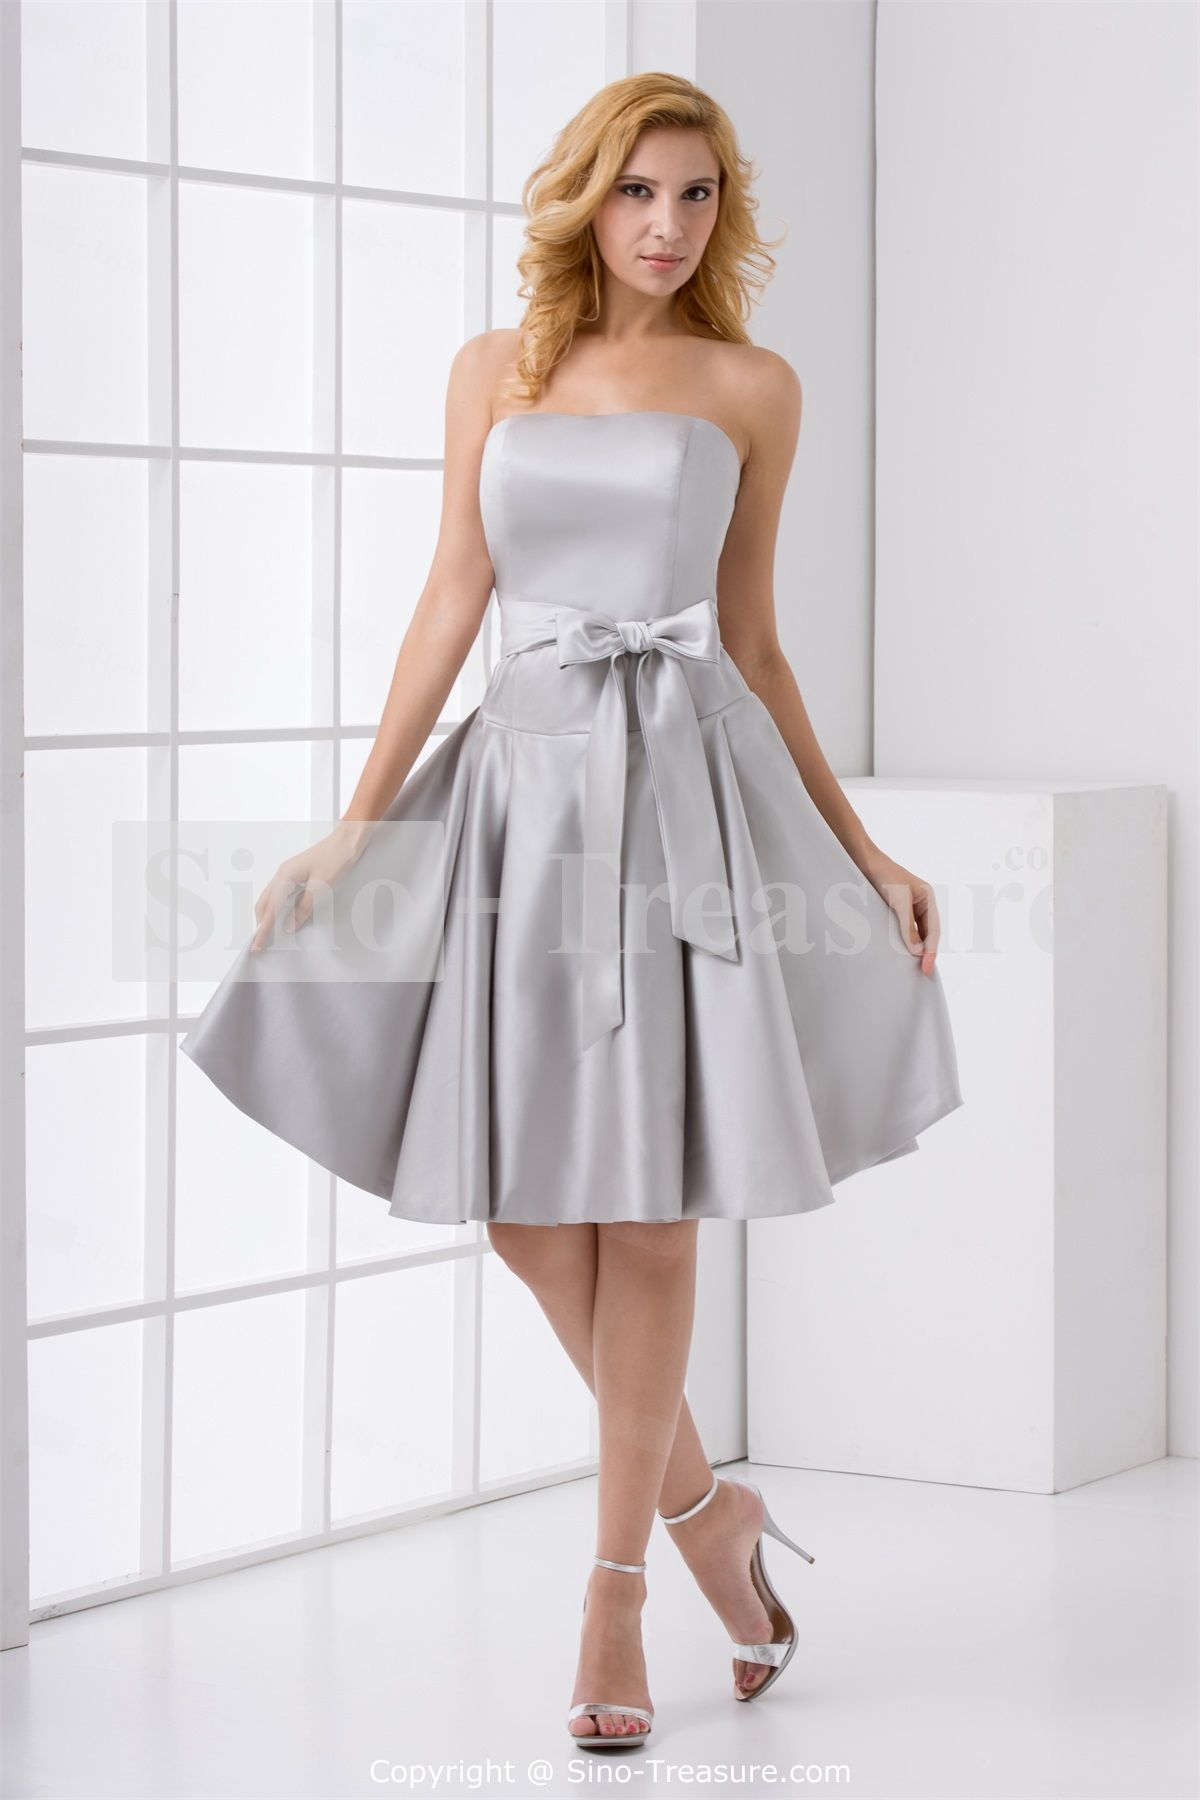 silver bridesmaid gowns Bridal Gowns Pinterest